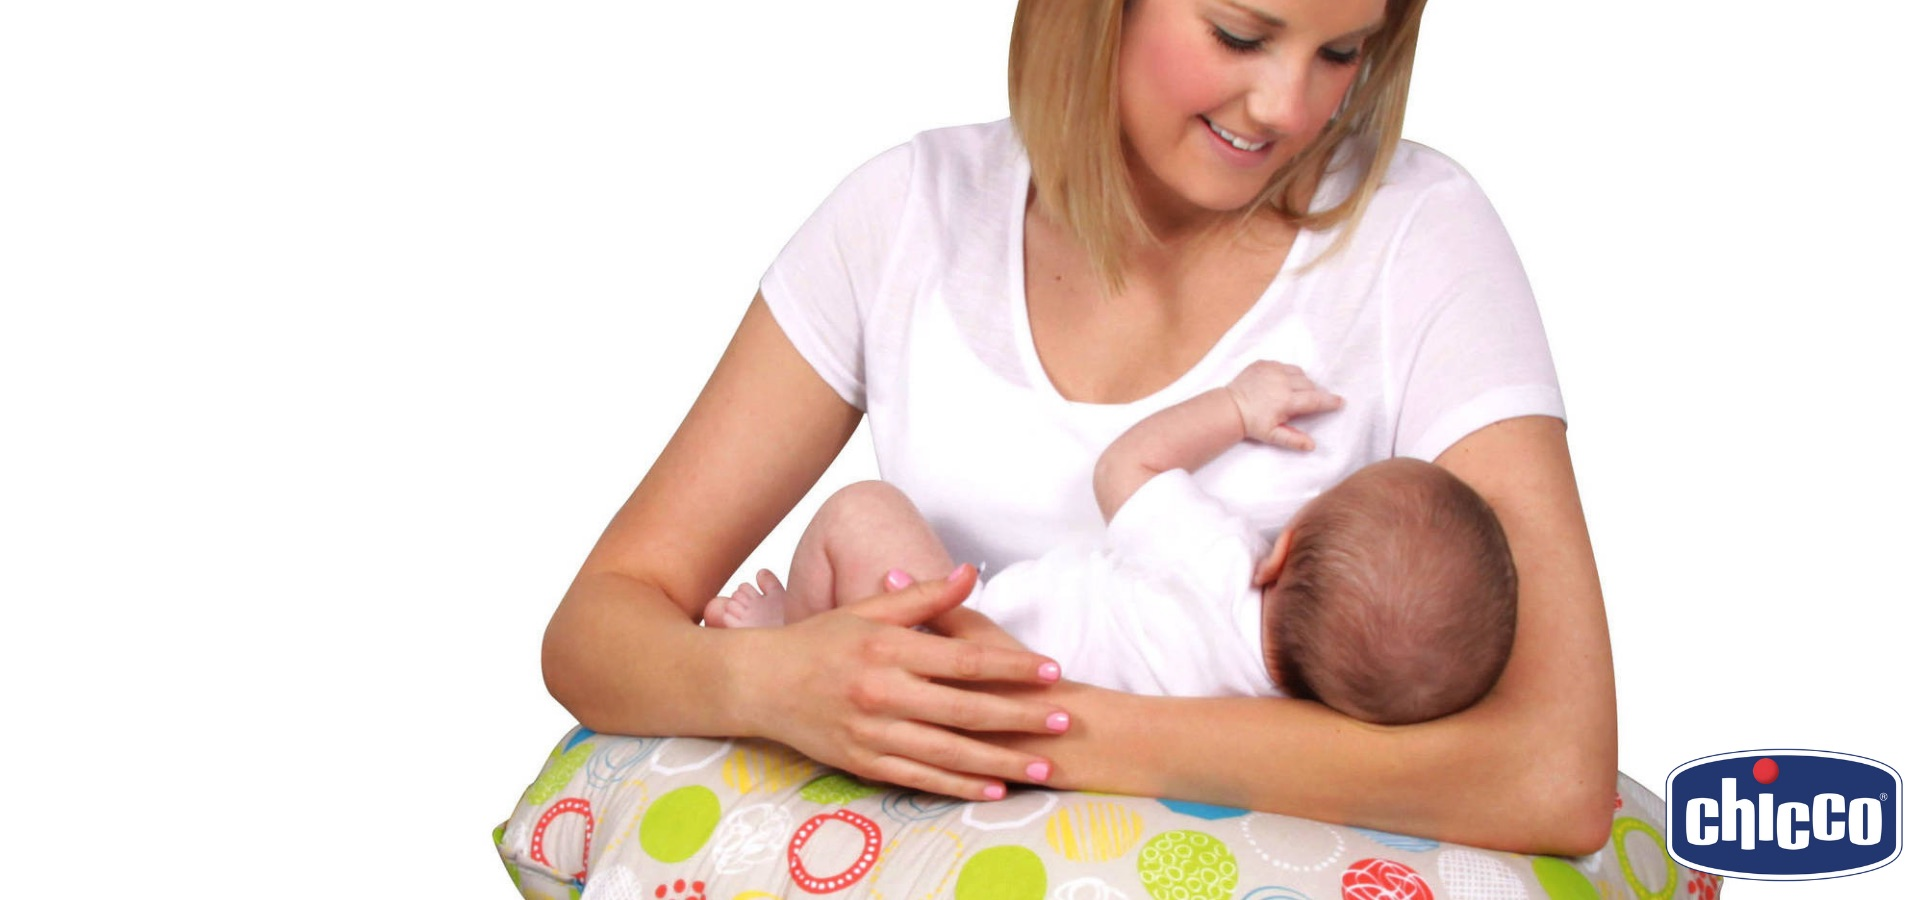 Chicco Boppy Tummy Time Pillow